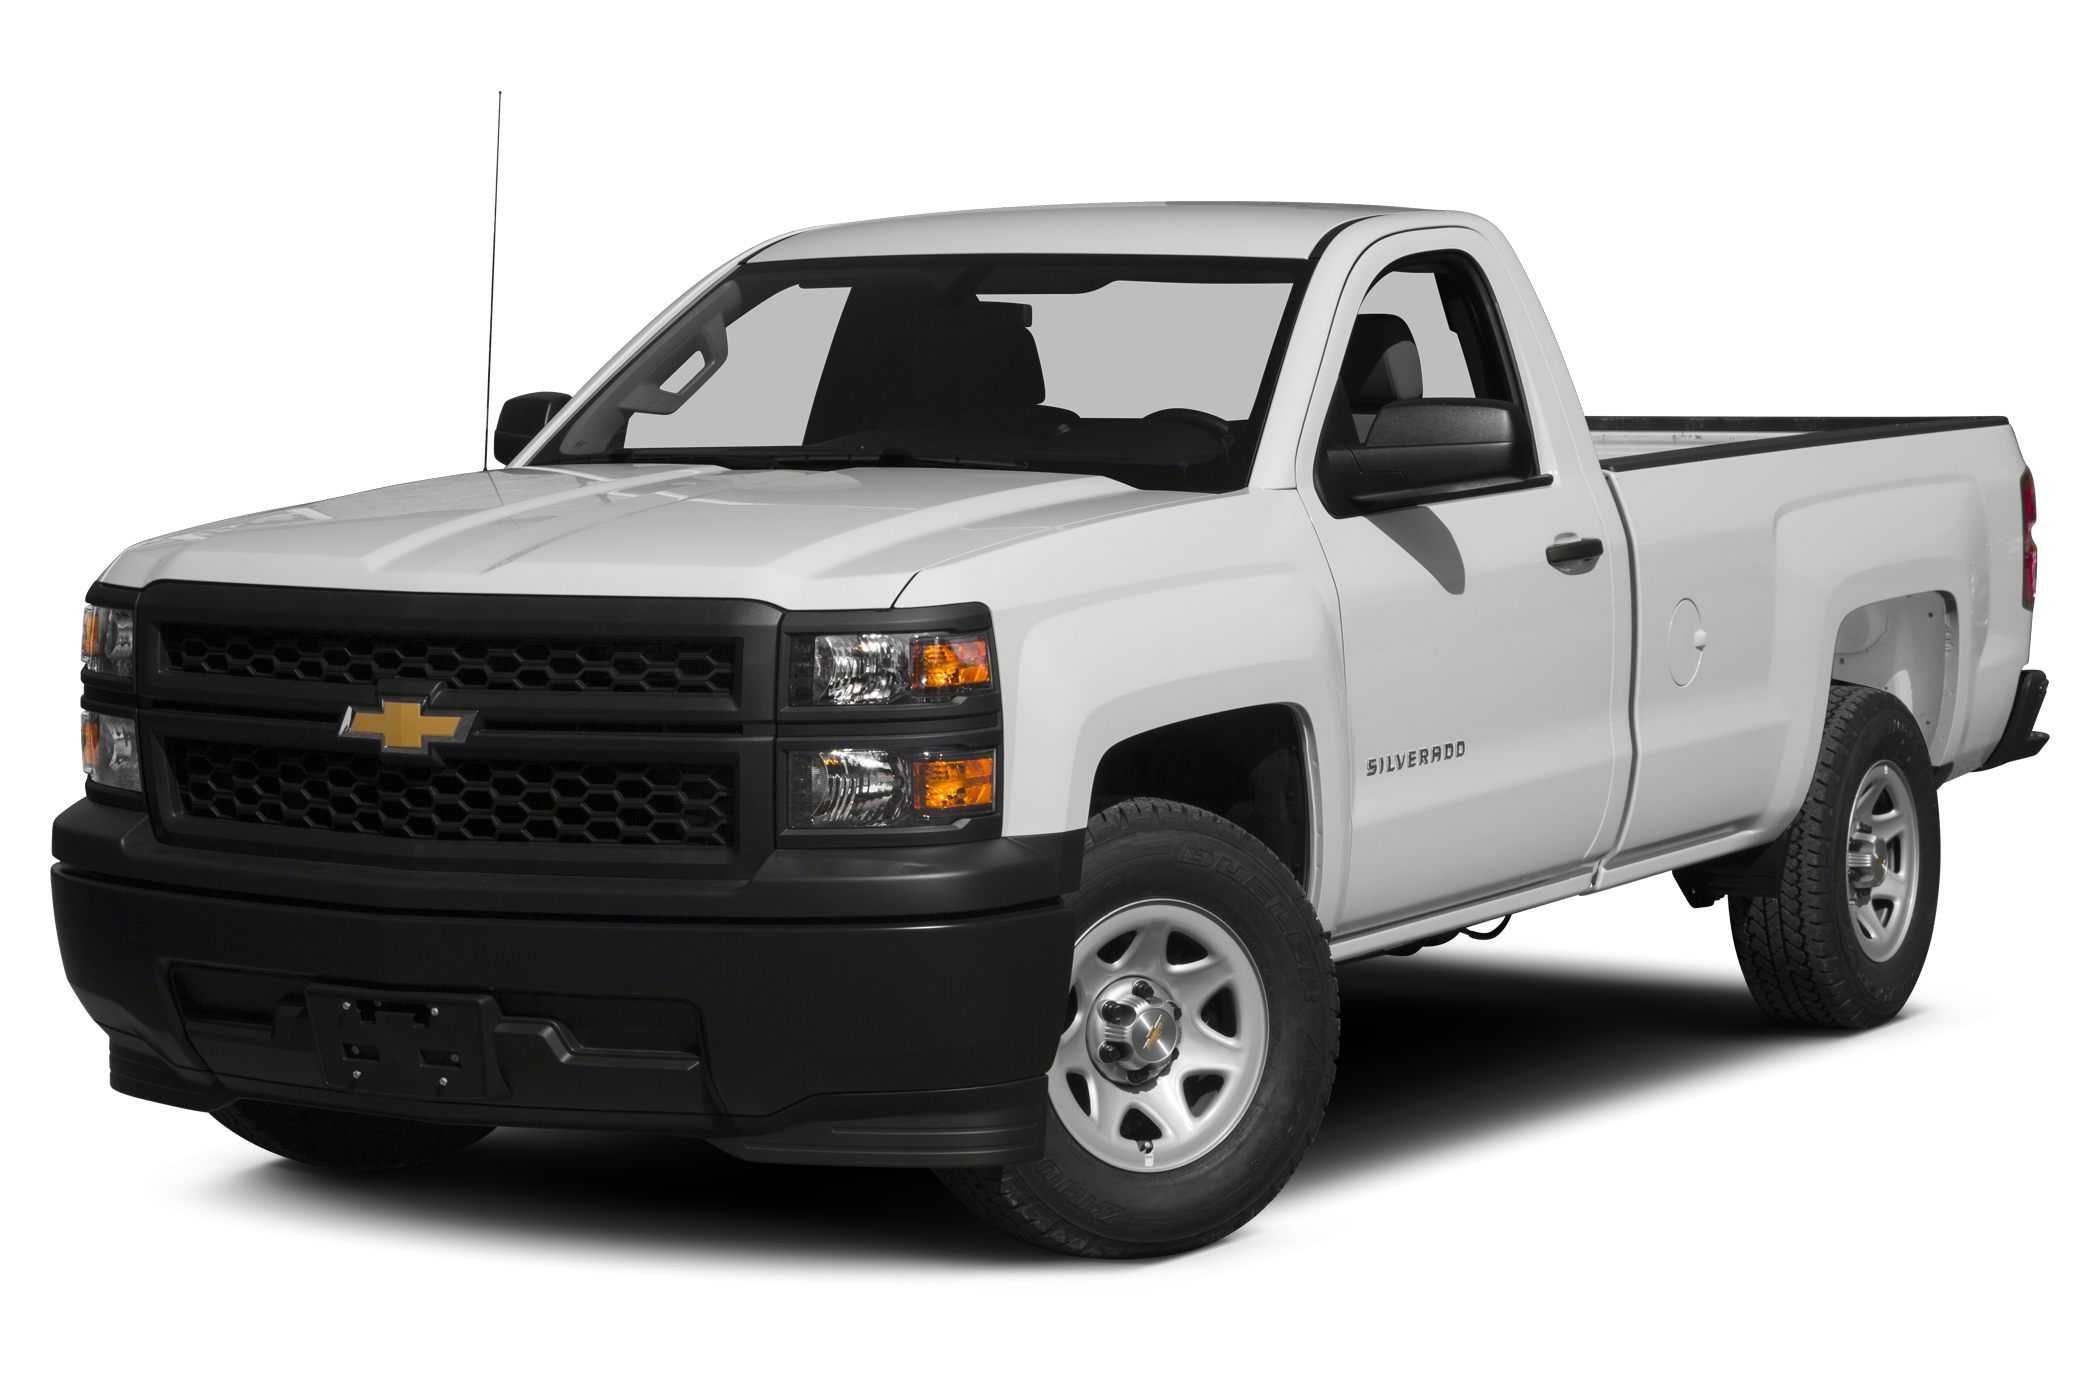 2014 Chevrolet Silverado 1500 1LT Extended Cab Pickup for sale in San Antonio for $28,995 with 22,624 miles